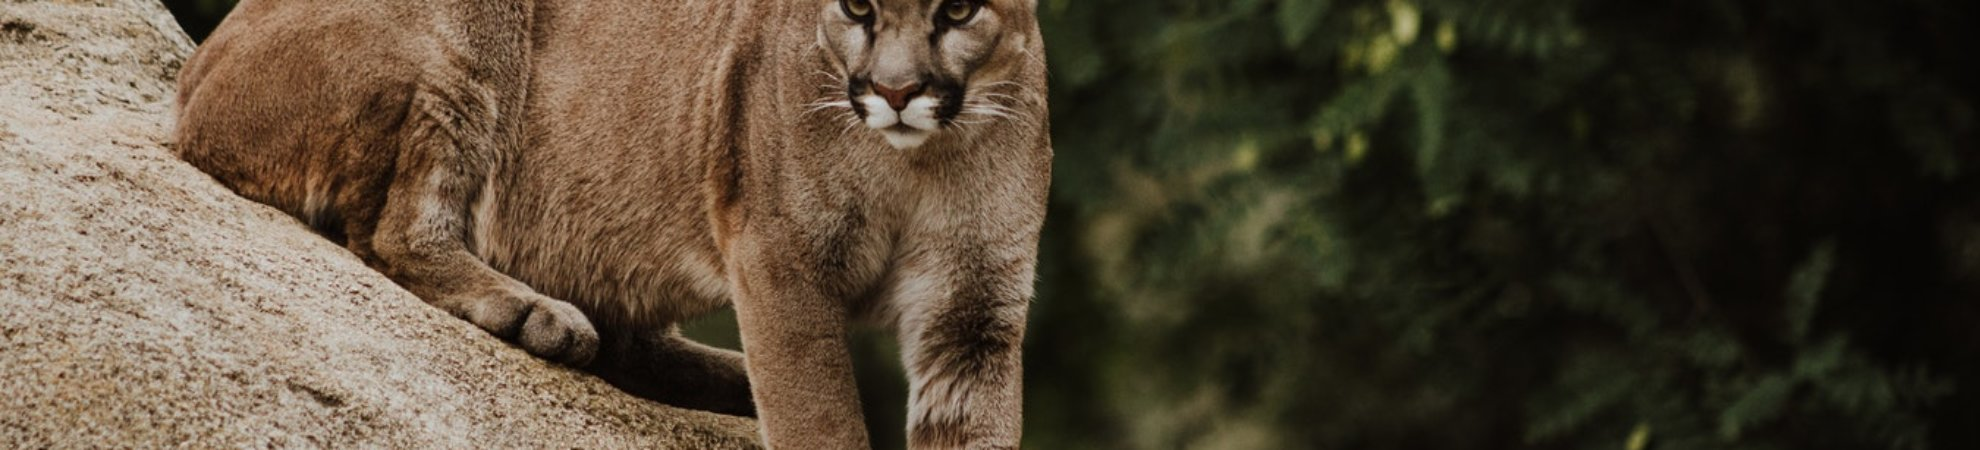 jogger killed mountain lion